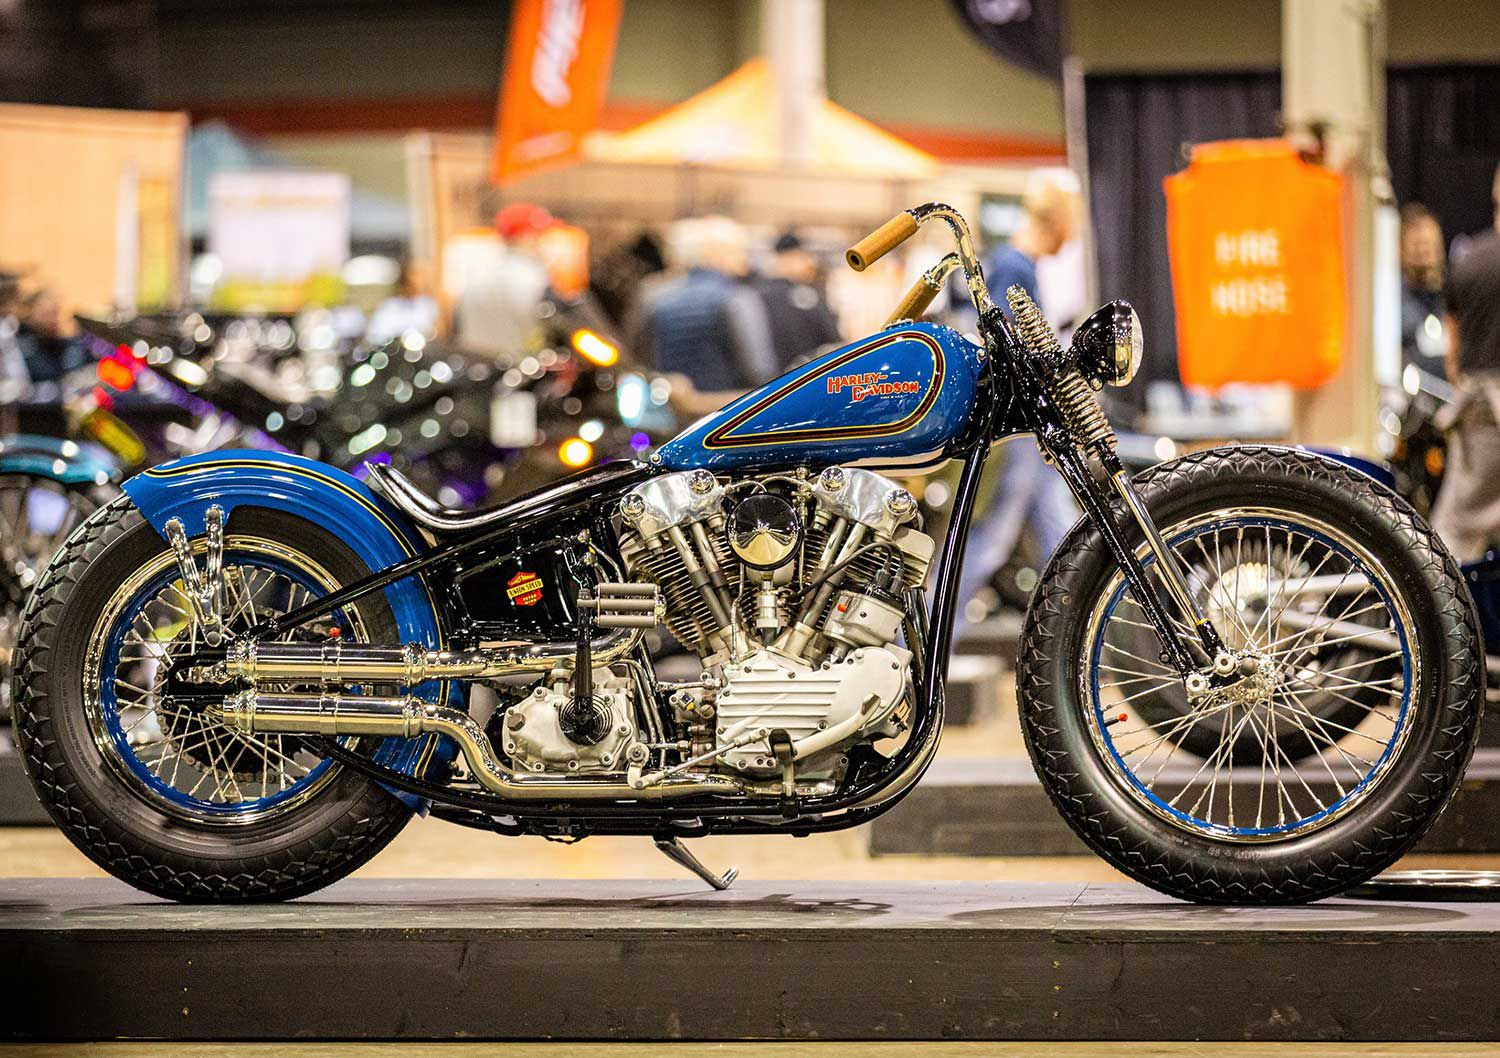 Jordan Dickinson of Union Speed and Style was crowned US champion (and Freestyle winner) for his 1947 Harley-Davidson Knucklehead, entirely handmade from raw materials, with a one-off frame and hand-hammered gas tank, fender, oil tank, and fender struts.